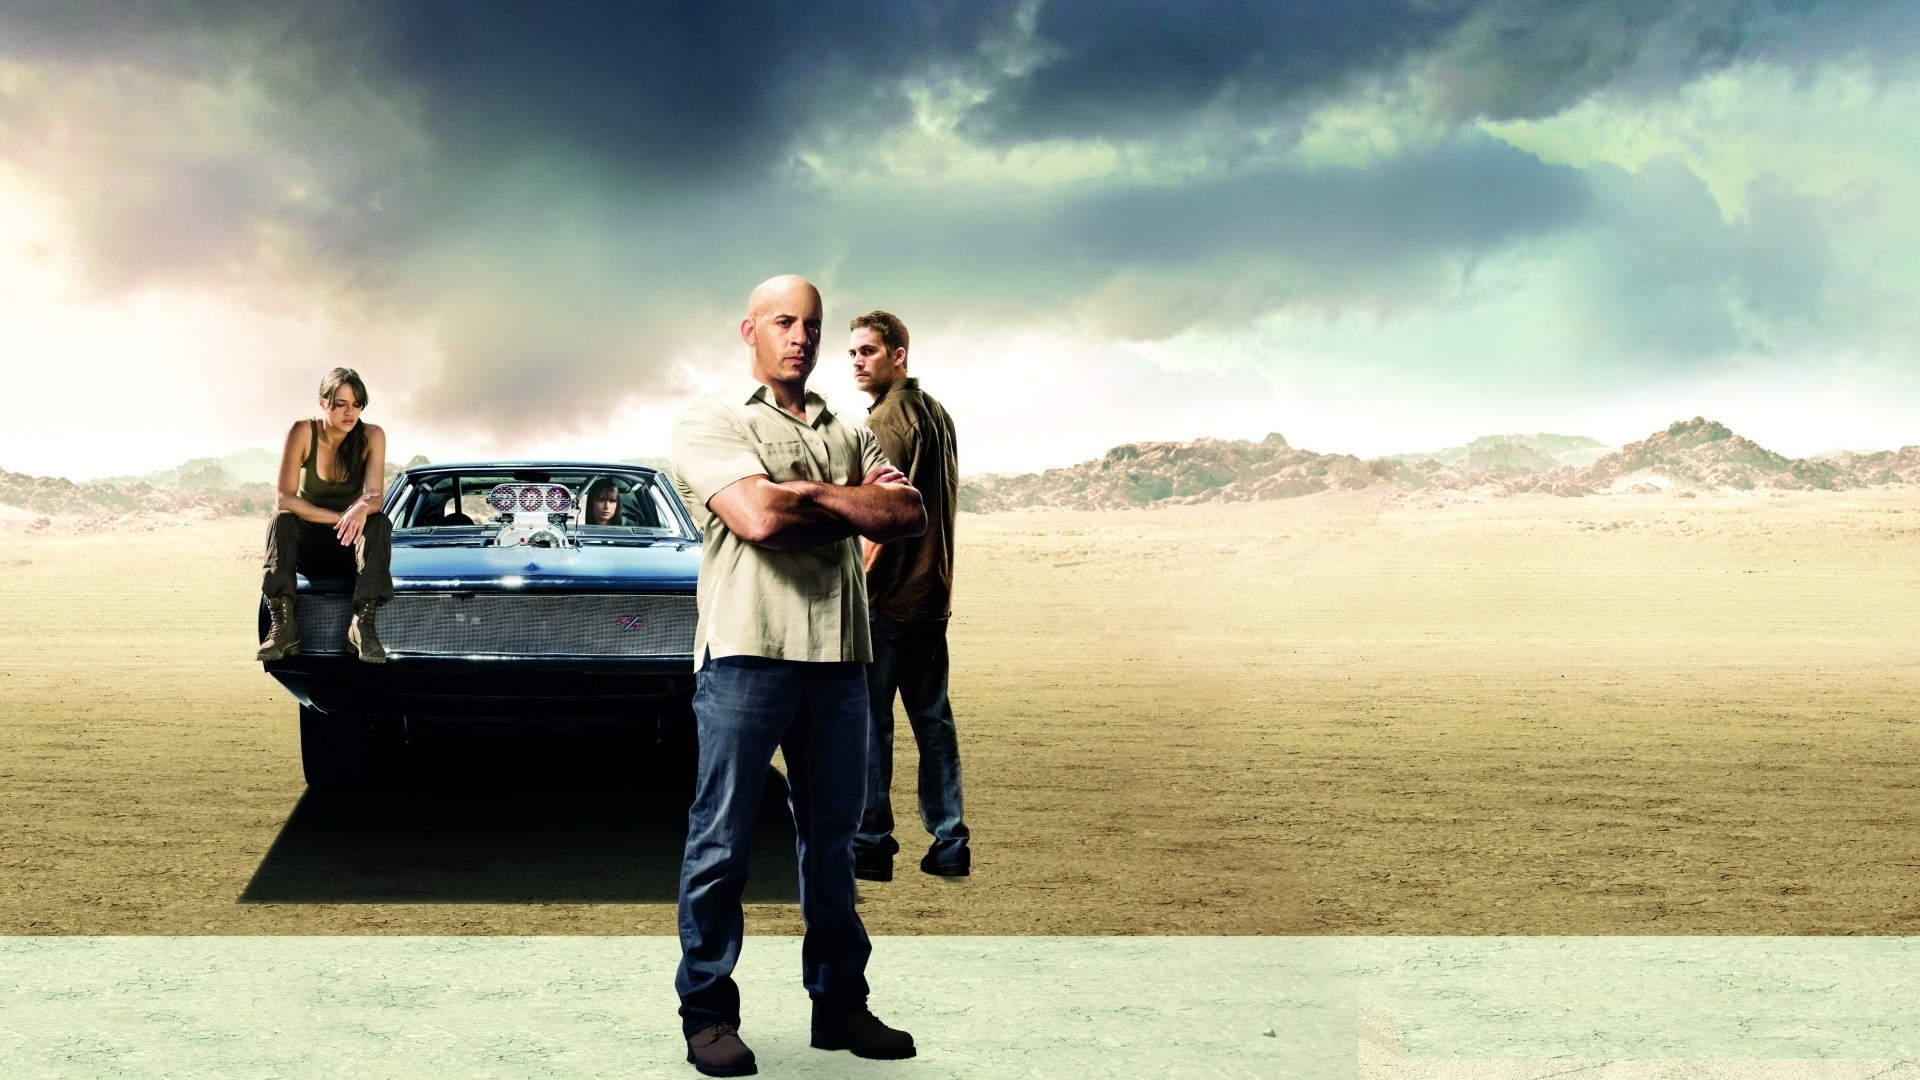 Fast And Furious Iphone 5 Wallpaper Fast And Furious Wallpapers High Quality Download Free